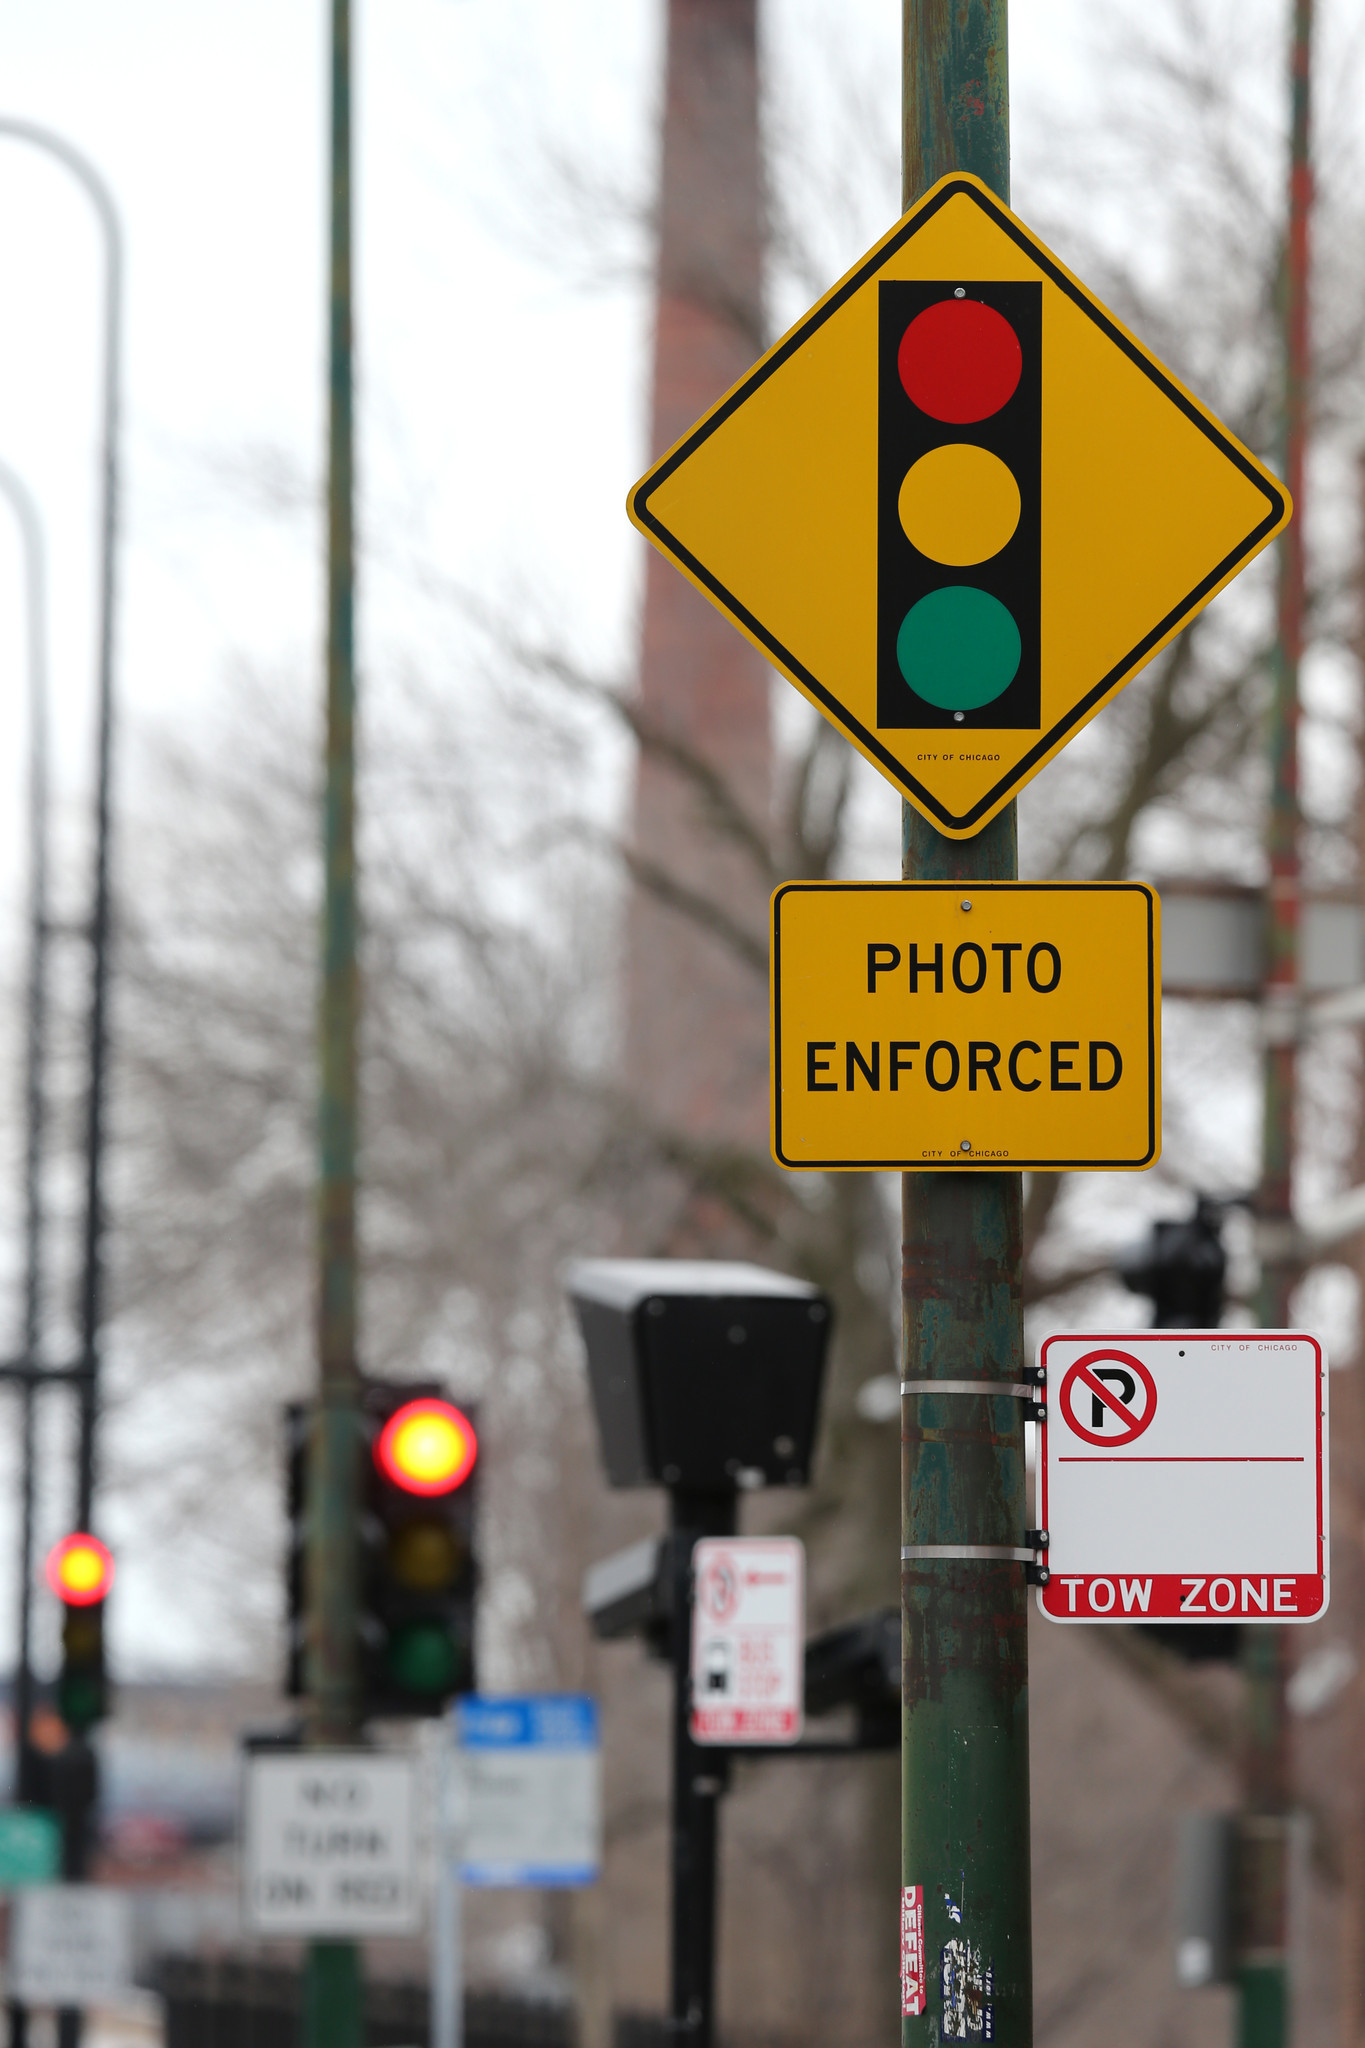 Chicago sues red light camera firm for $300 million - Chicago Tribune